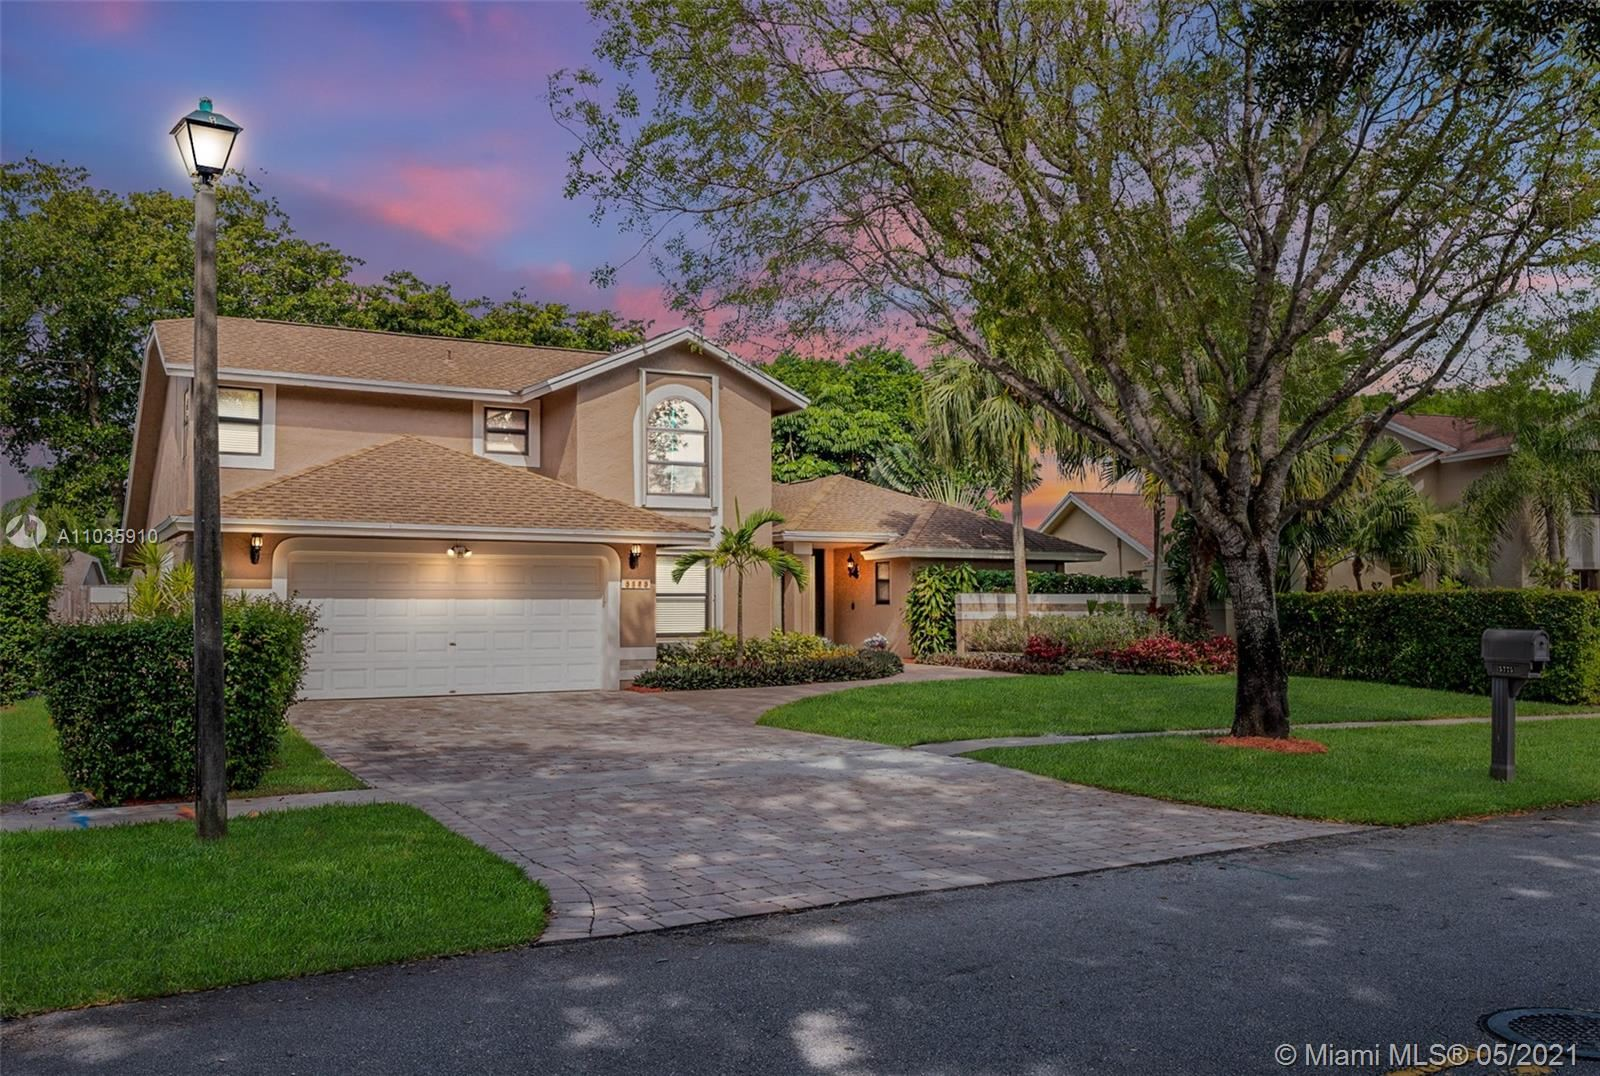 Photo of 5775 SW 88th Ave, Cooper City, FL 33328 (MLS # A11035910)